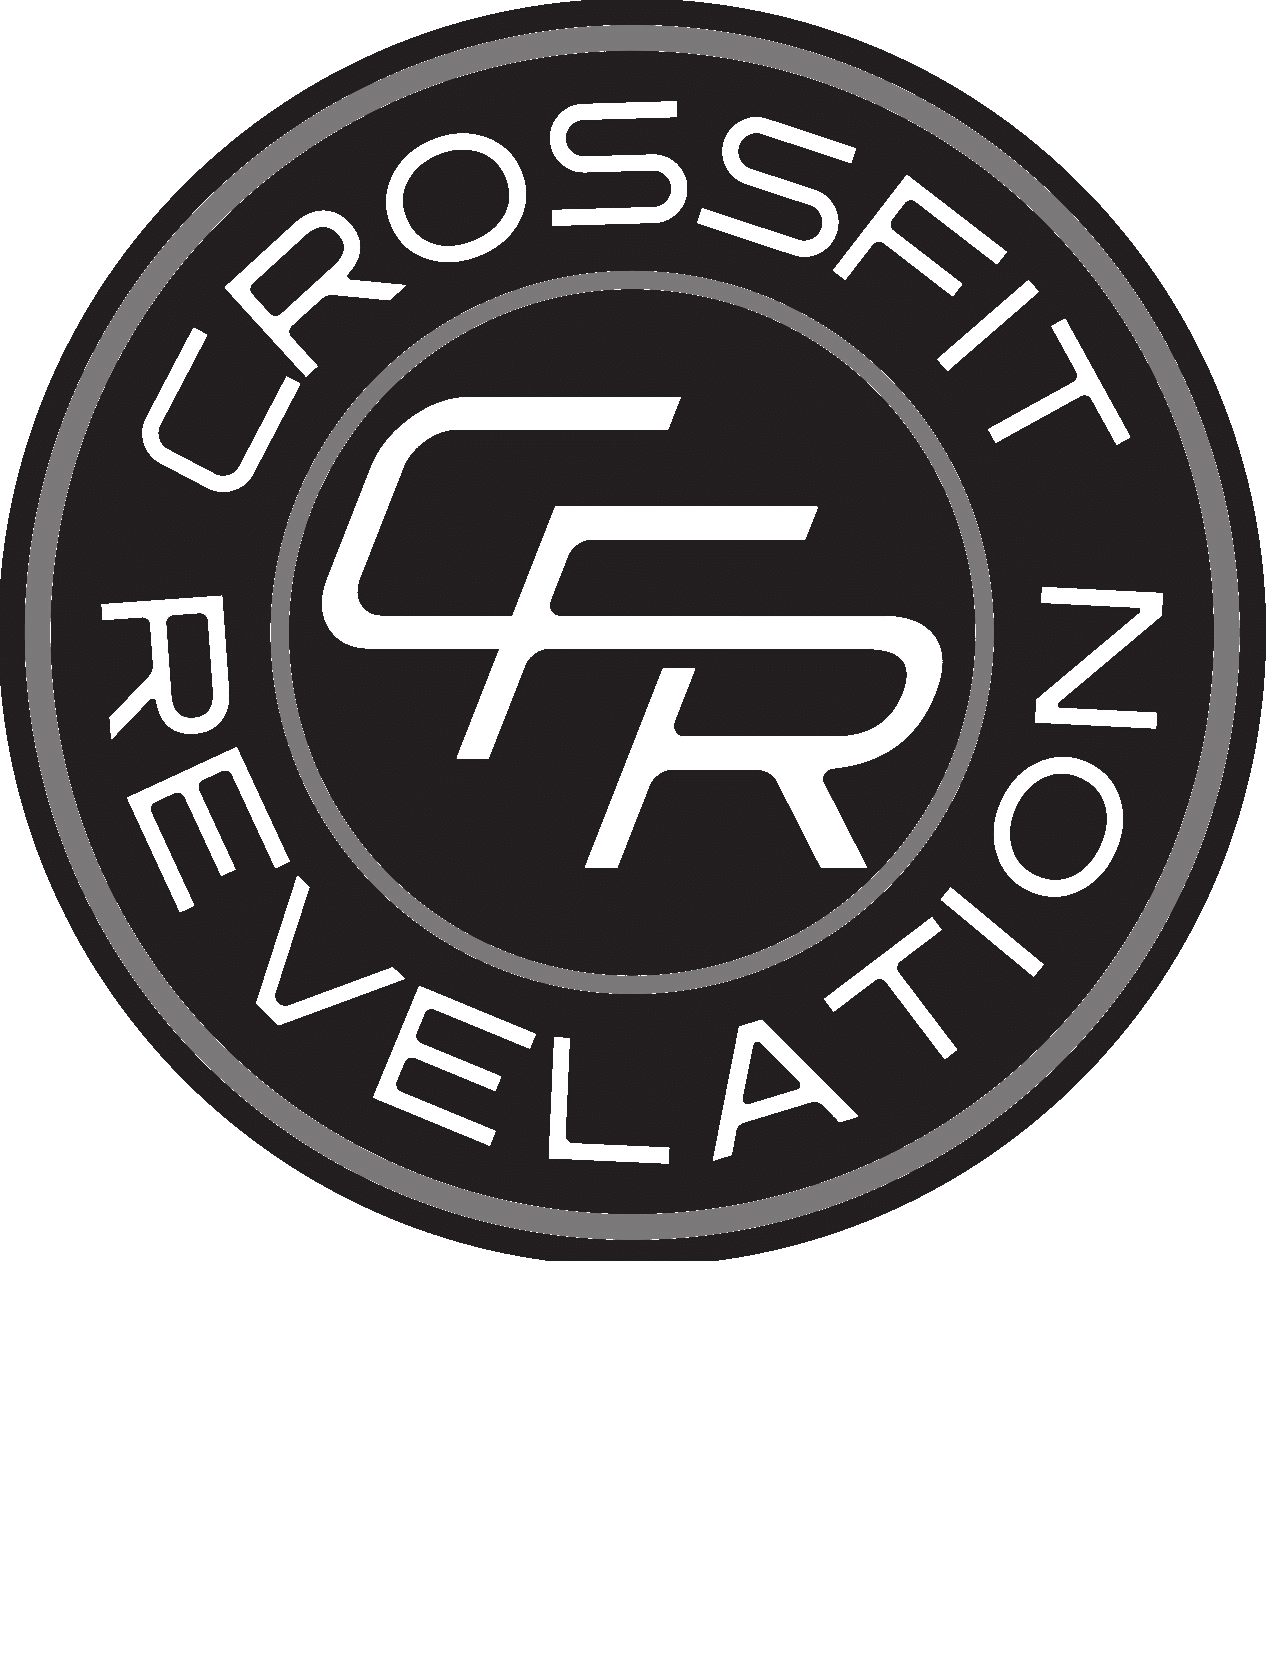 CrossFit Programming — CrossFit Revelation